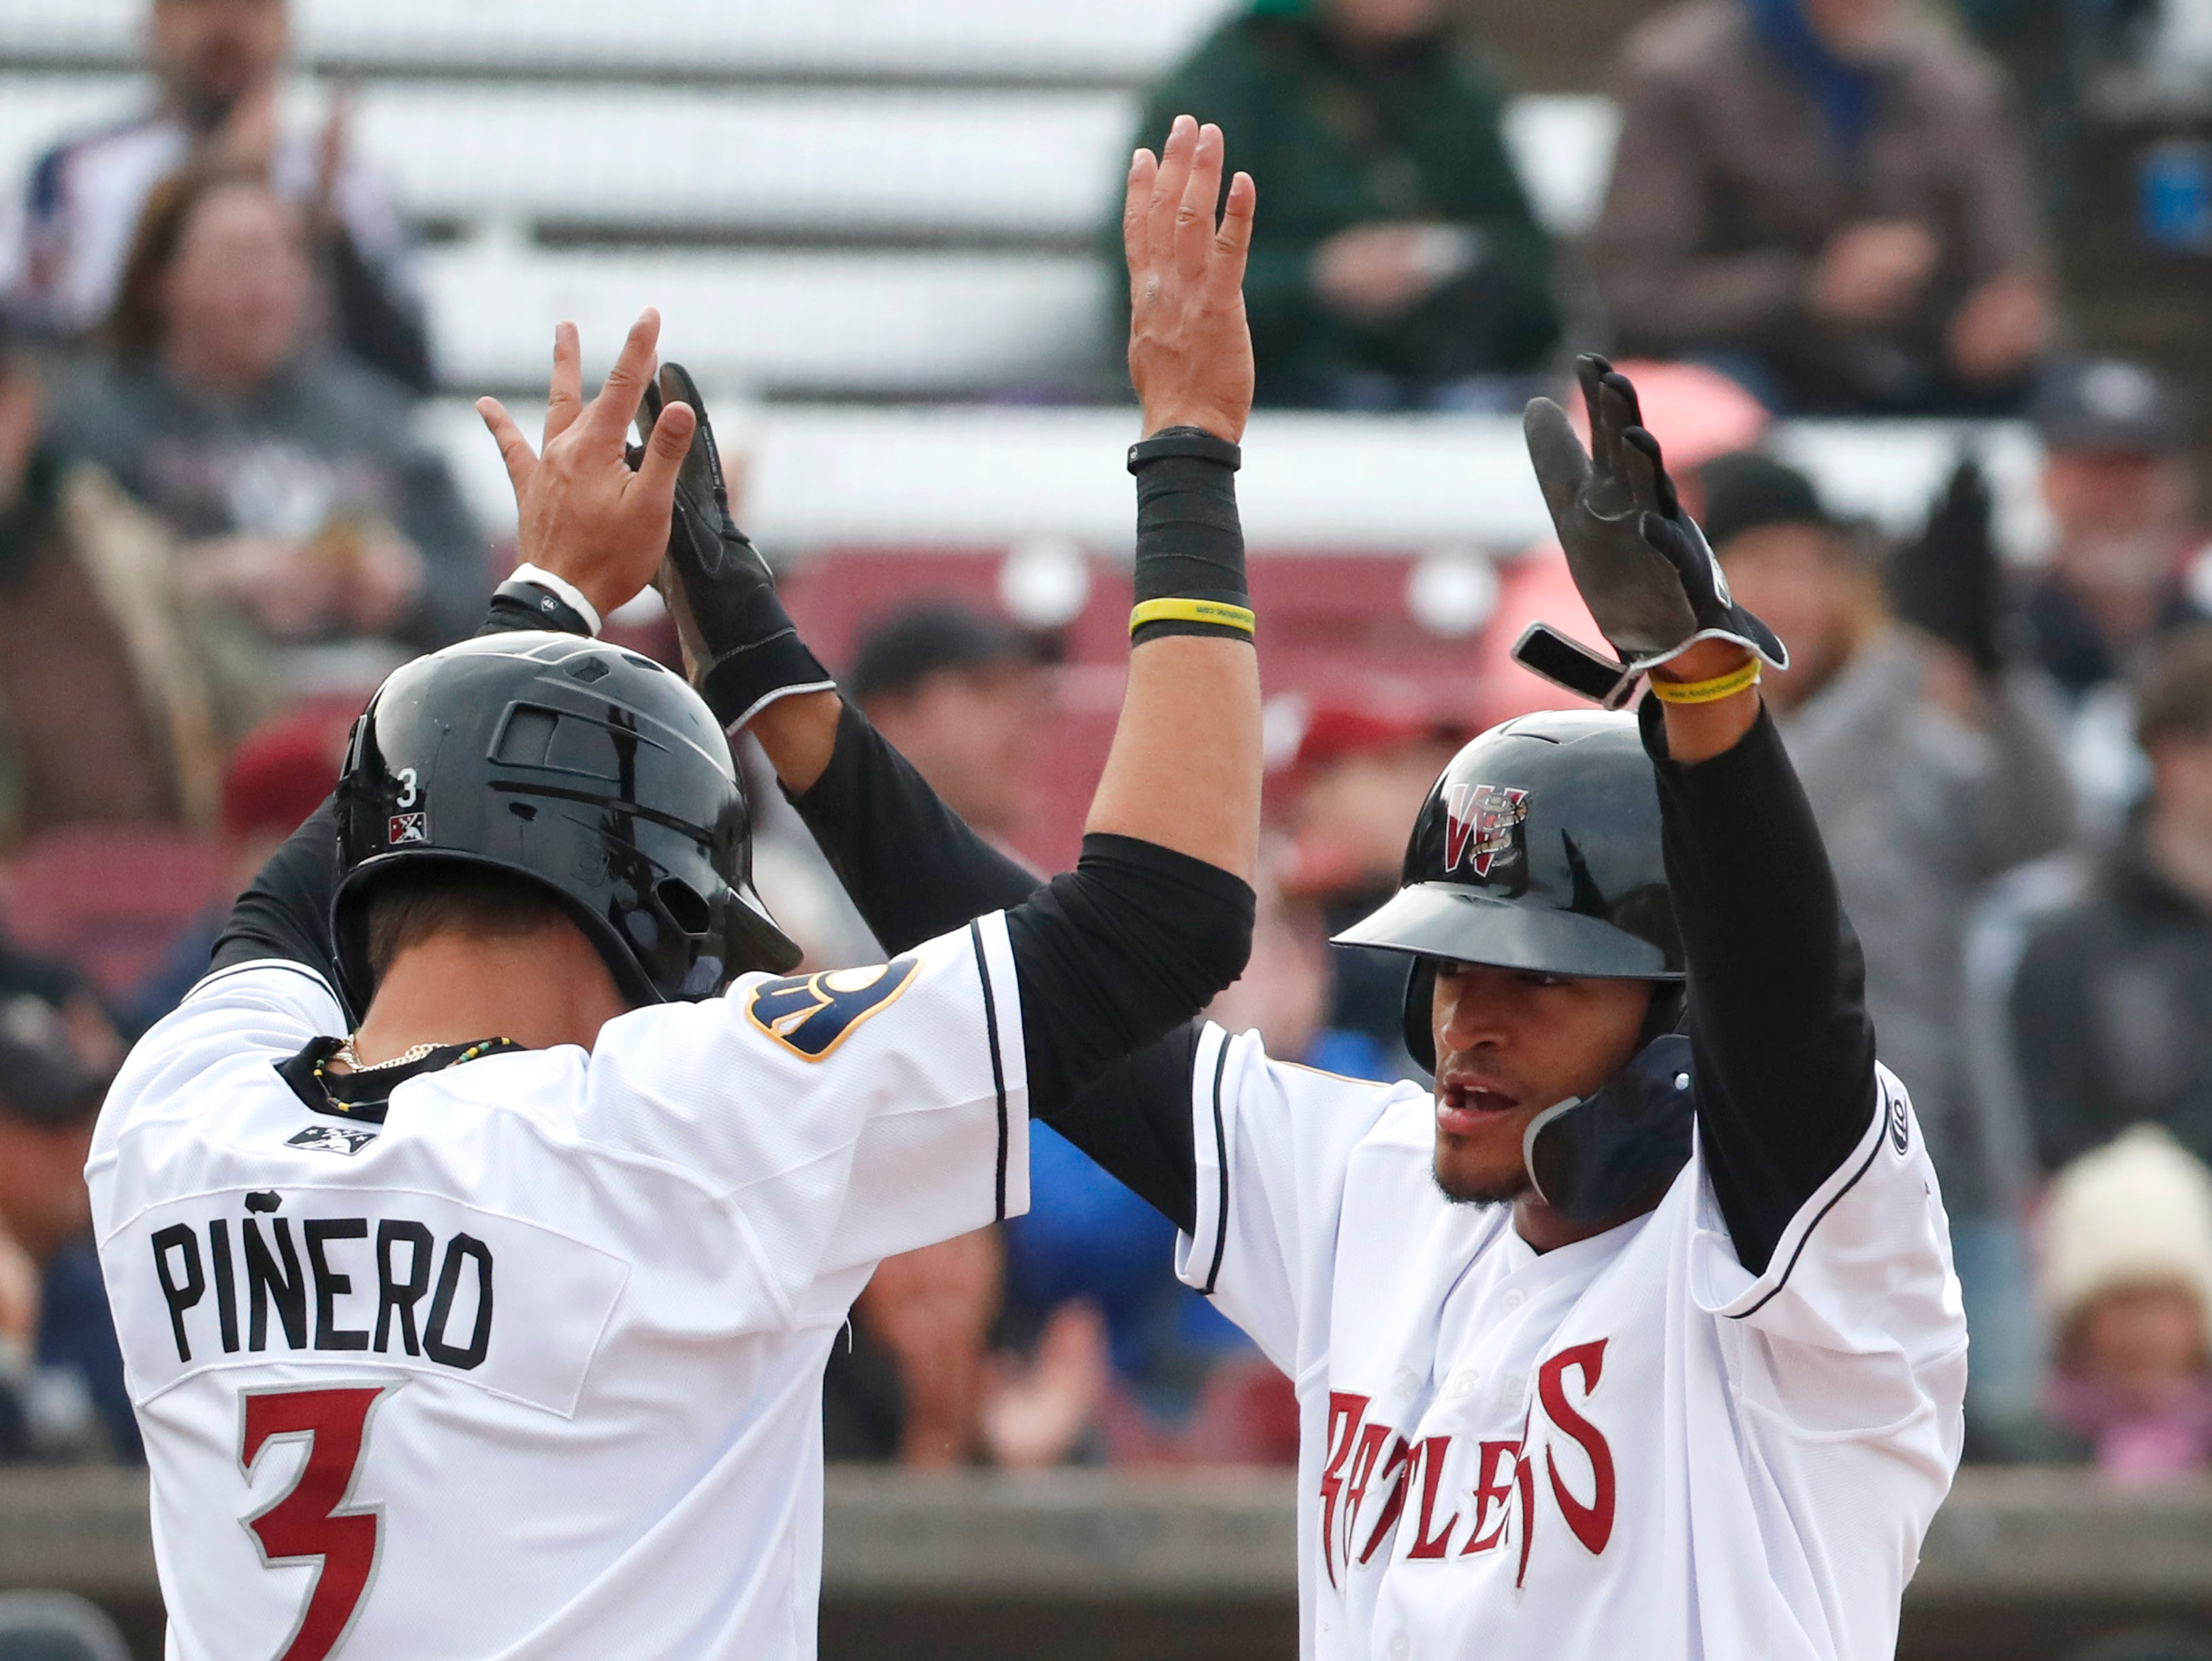 The Timber RattlersÕ Antonio Pinero and Pablo Abreu celebrate after they scored the only runs of their home opener against the Cedar Rapids Kernels Saturday, April 6, 2019, at Neuroscience Group Field at Fox Cites Stadium in Grand Chute, Wis. Danny Damiani/USA TODAY NETWORK-Wisconsin